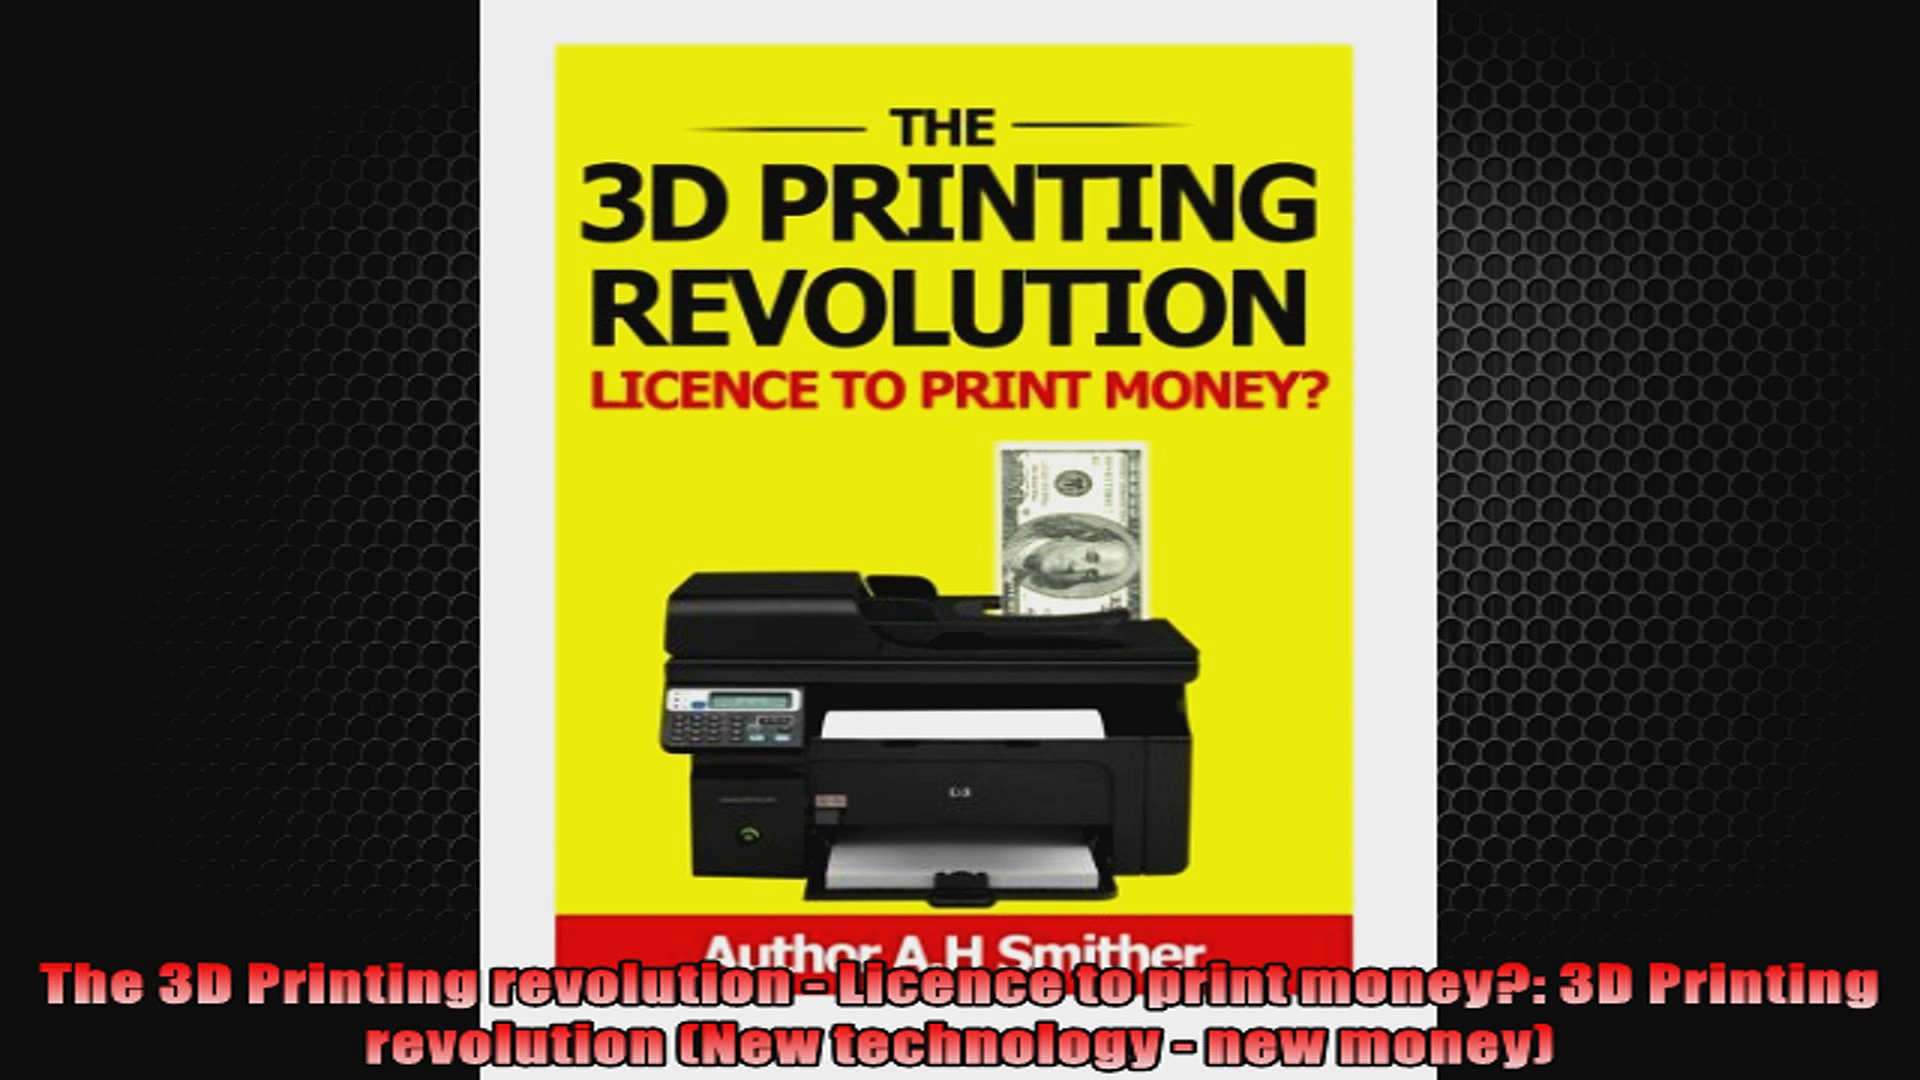 The 3D Printing revolution  Licence to print money 3D Printing revolution New